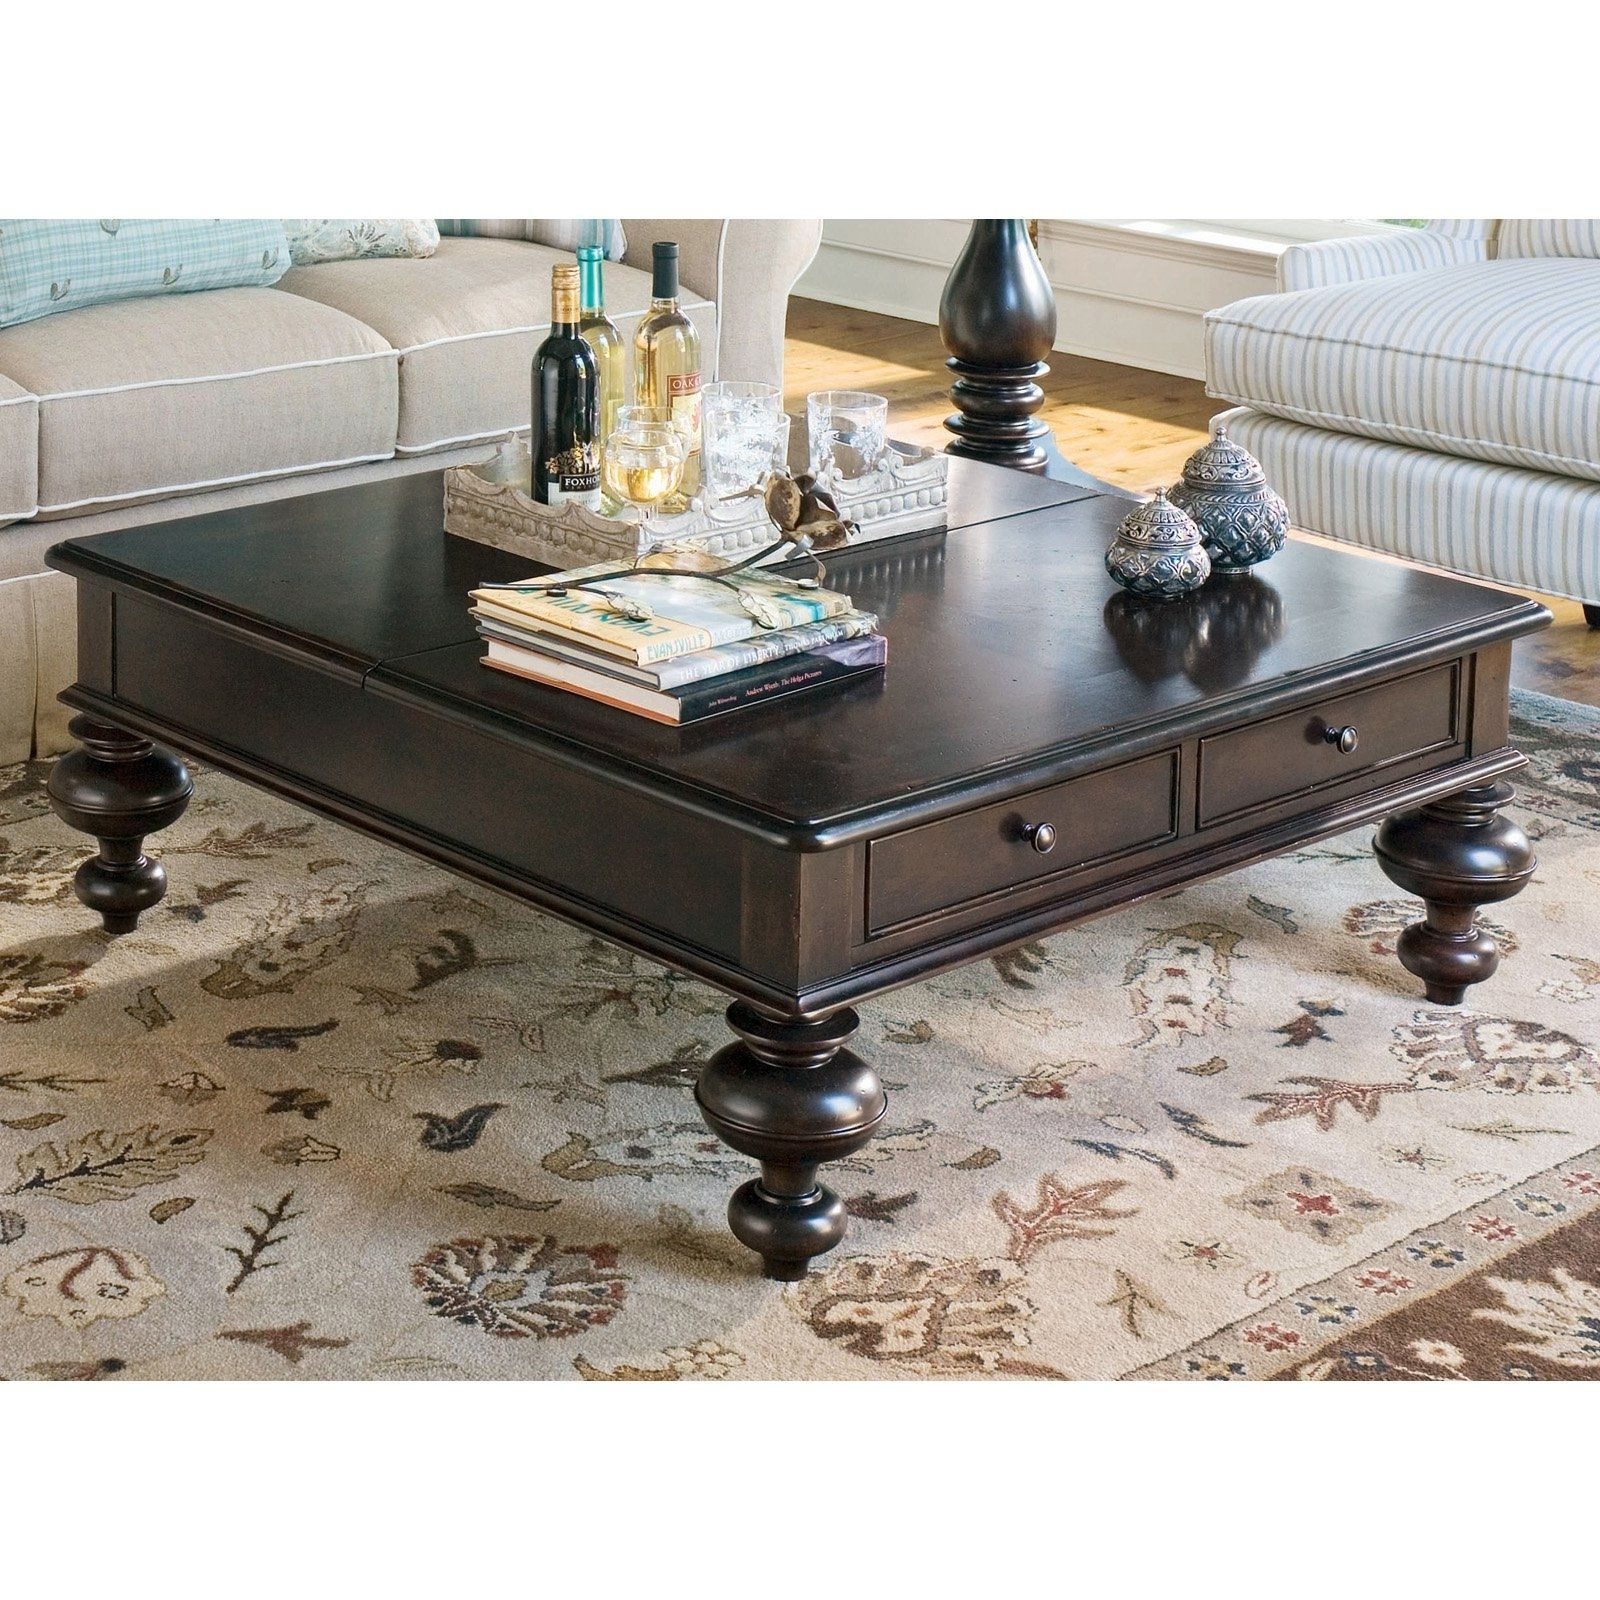 Frasier Square Coffee Table httptherapybychancecom Pinterest